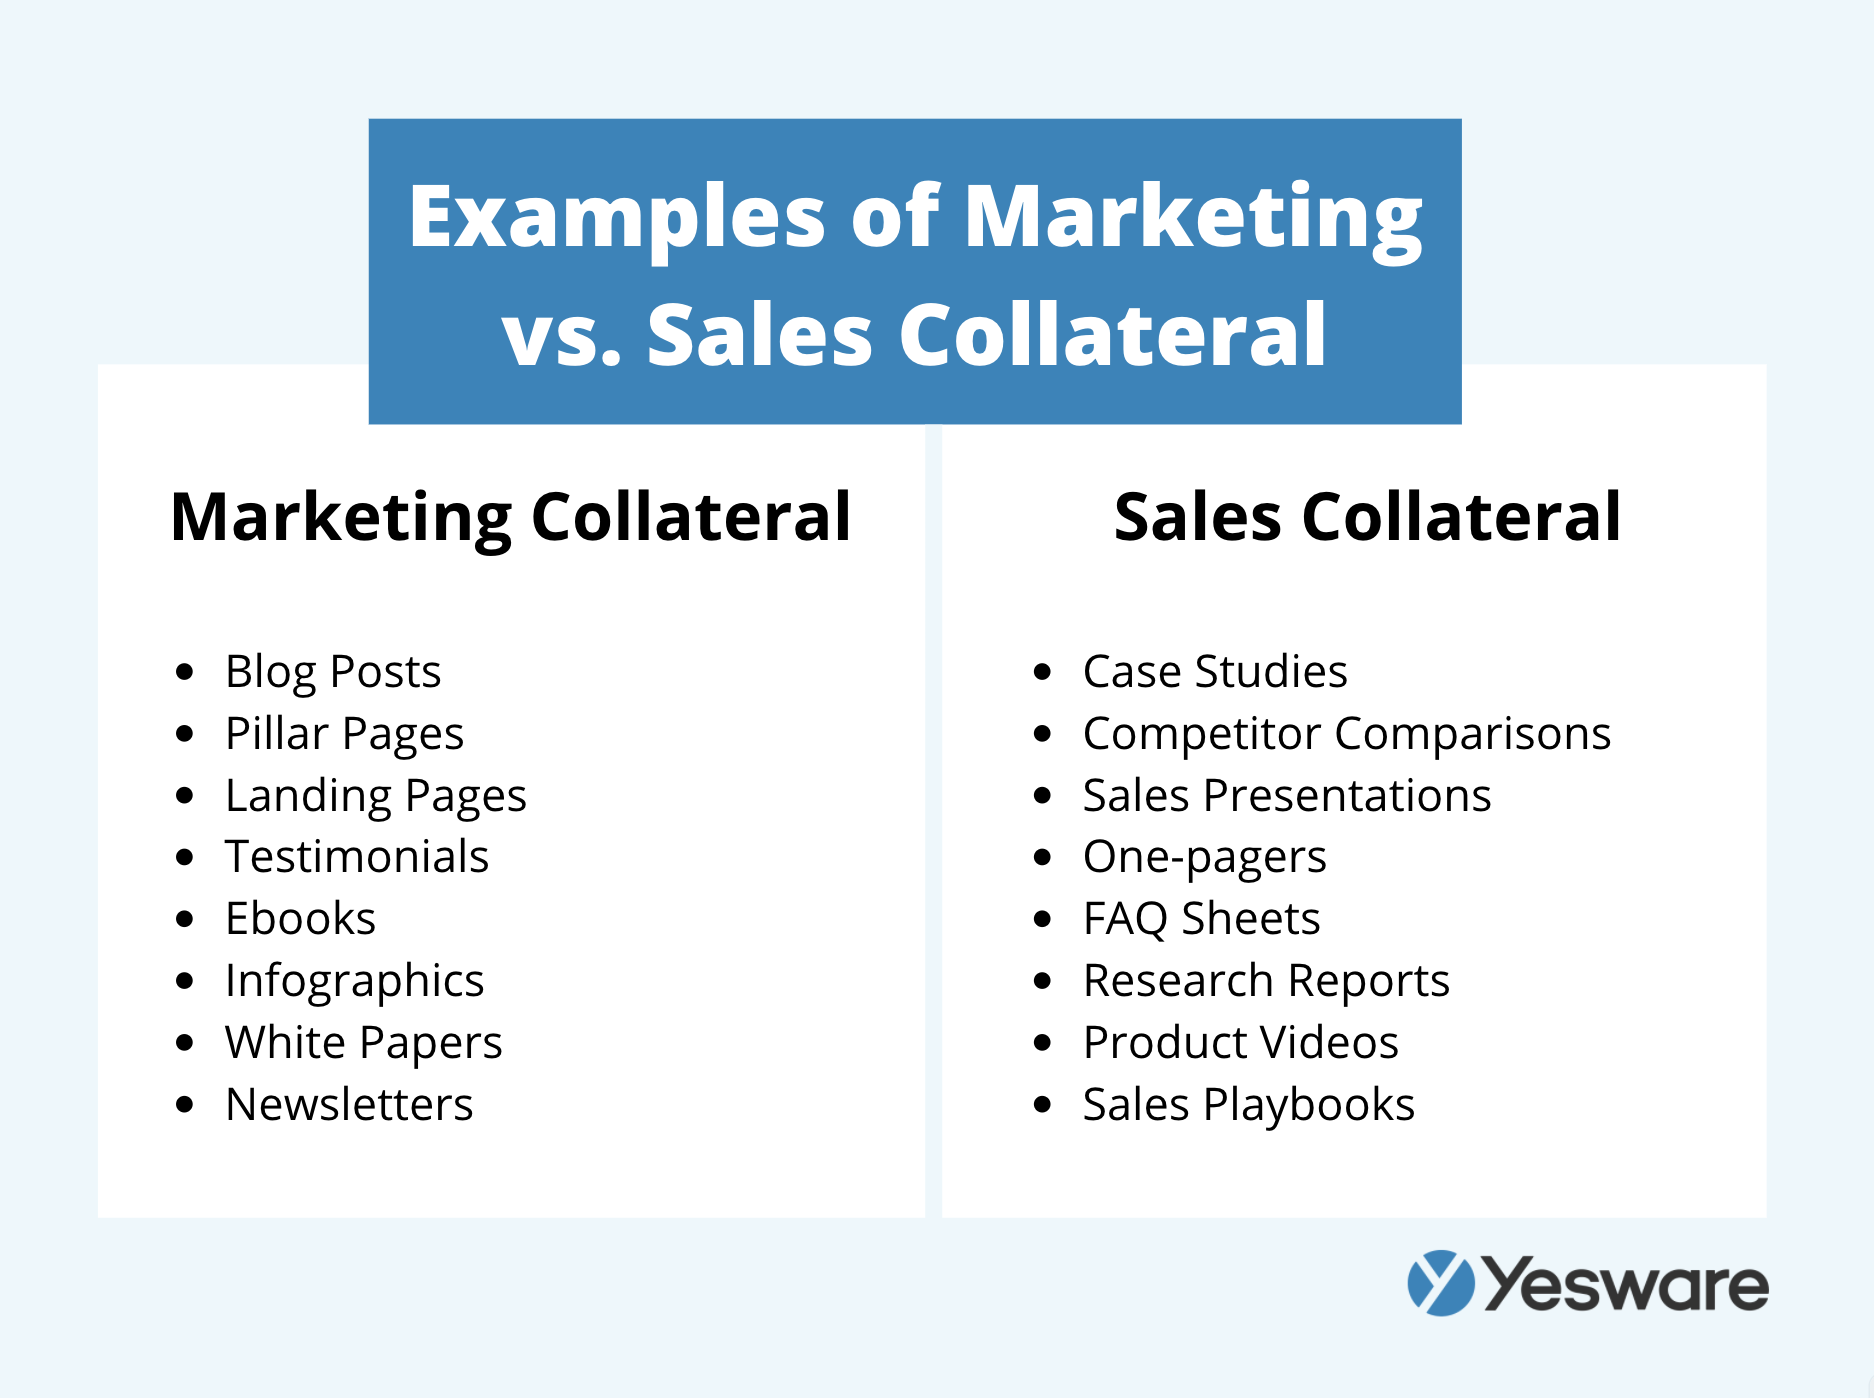 Sales collateral vs marketing collateral